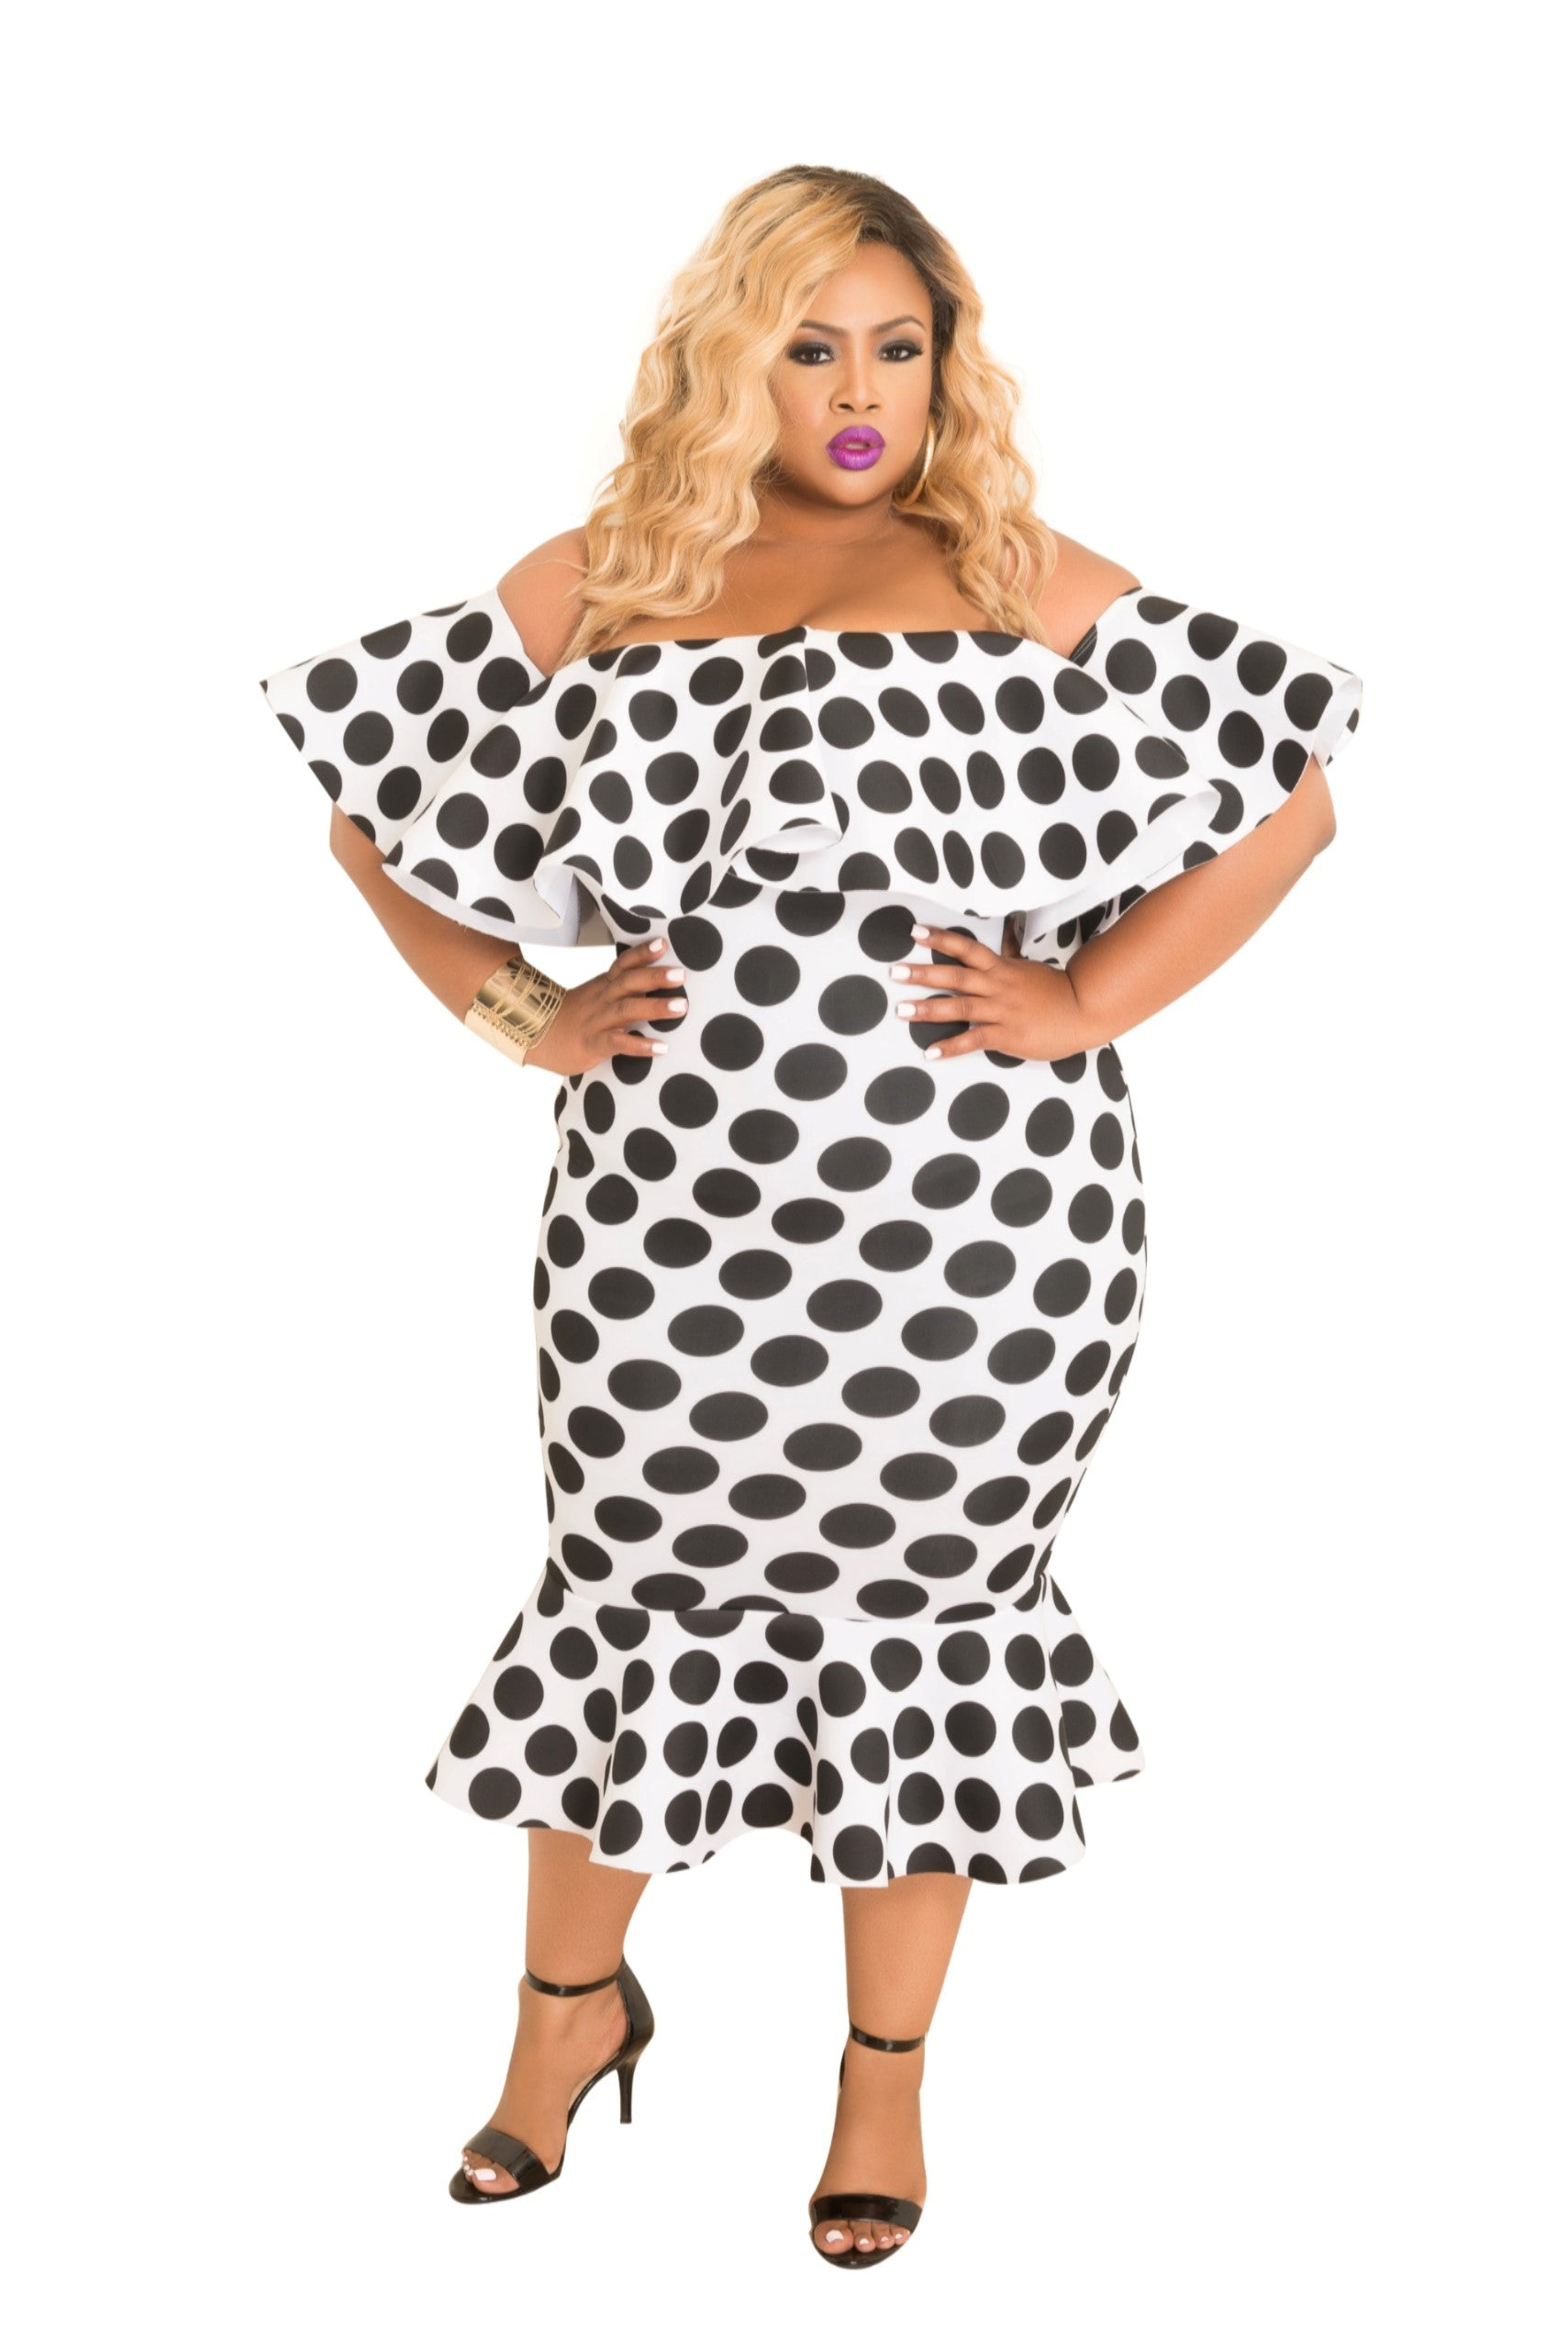 Final Plus Size Off the Shoulder Ruffle BodyCon Dress in White Scuba with Black Polka Dots